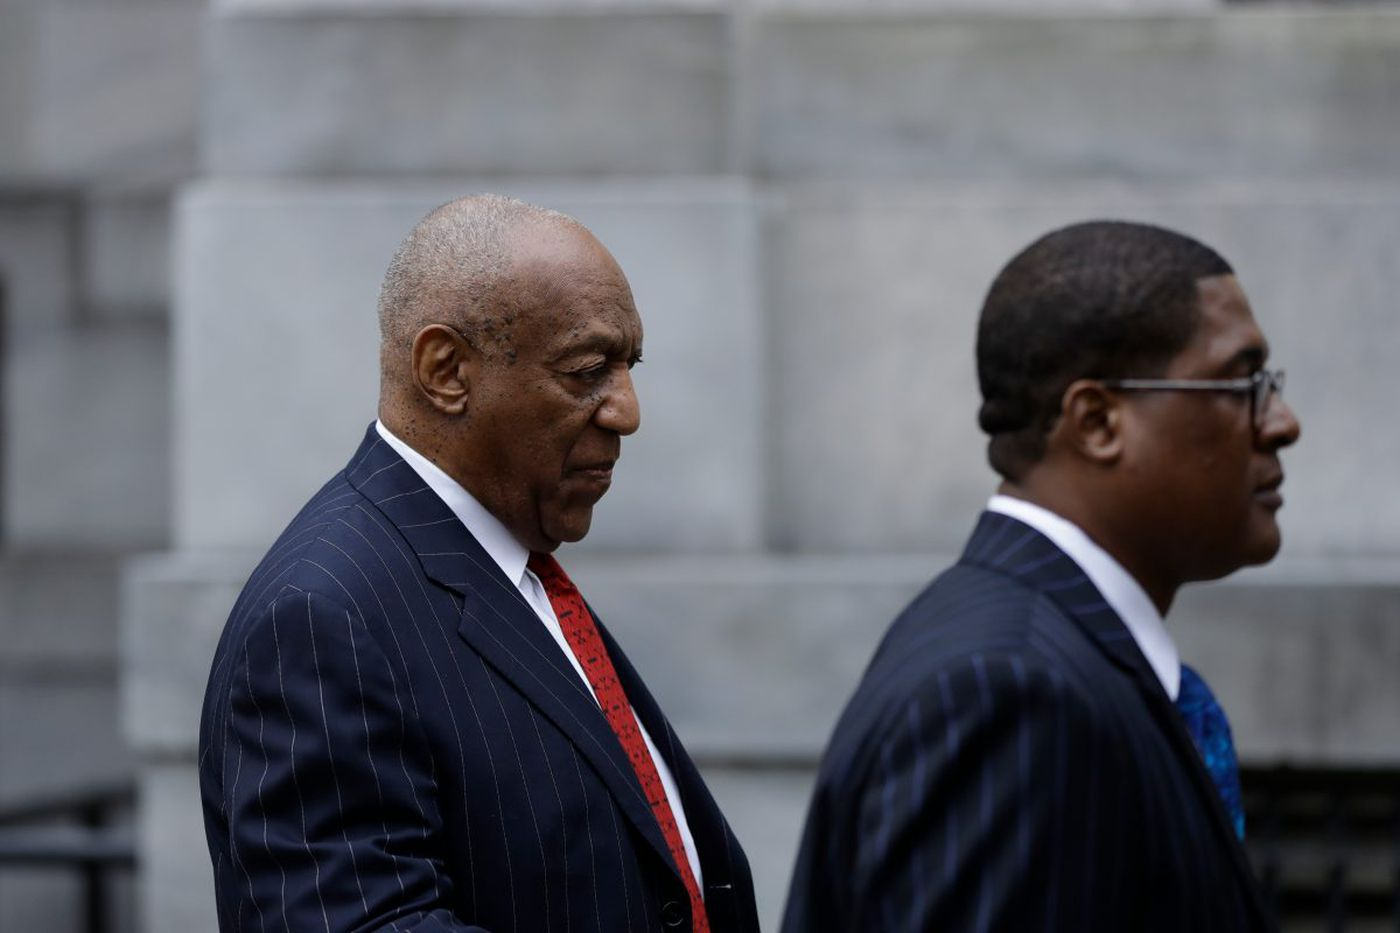 This time, Bill Cosby jurors might not hear he gave women Quaaludes, judge says